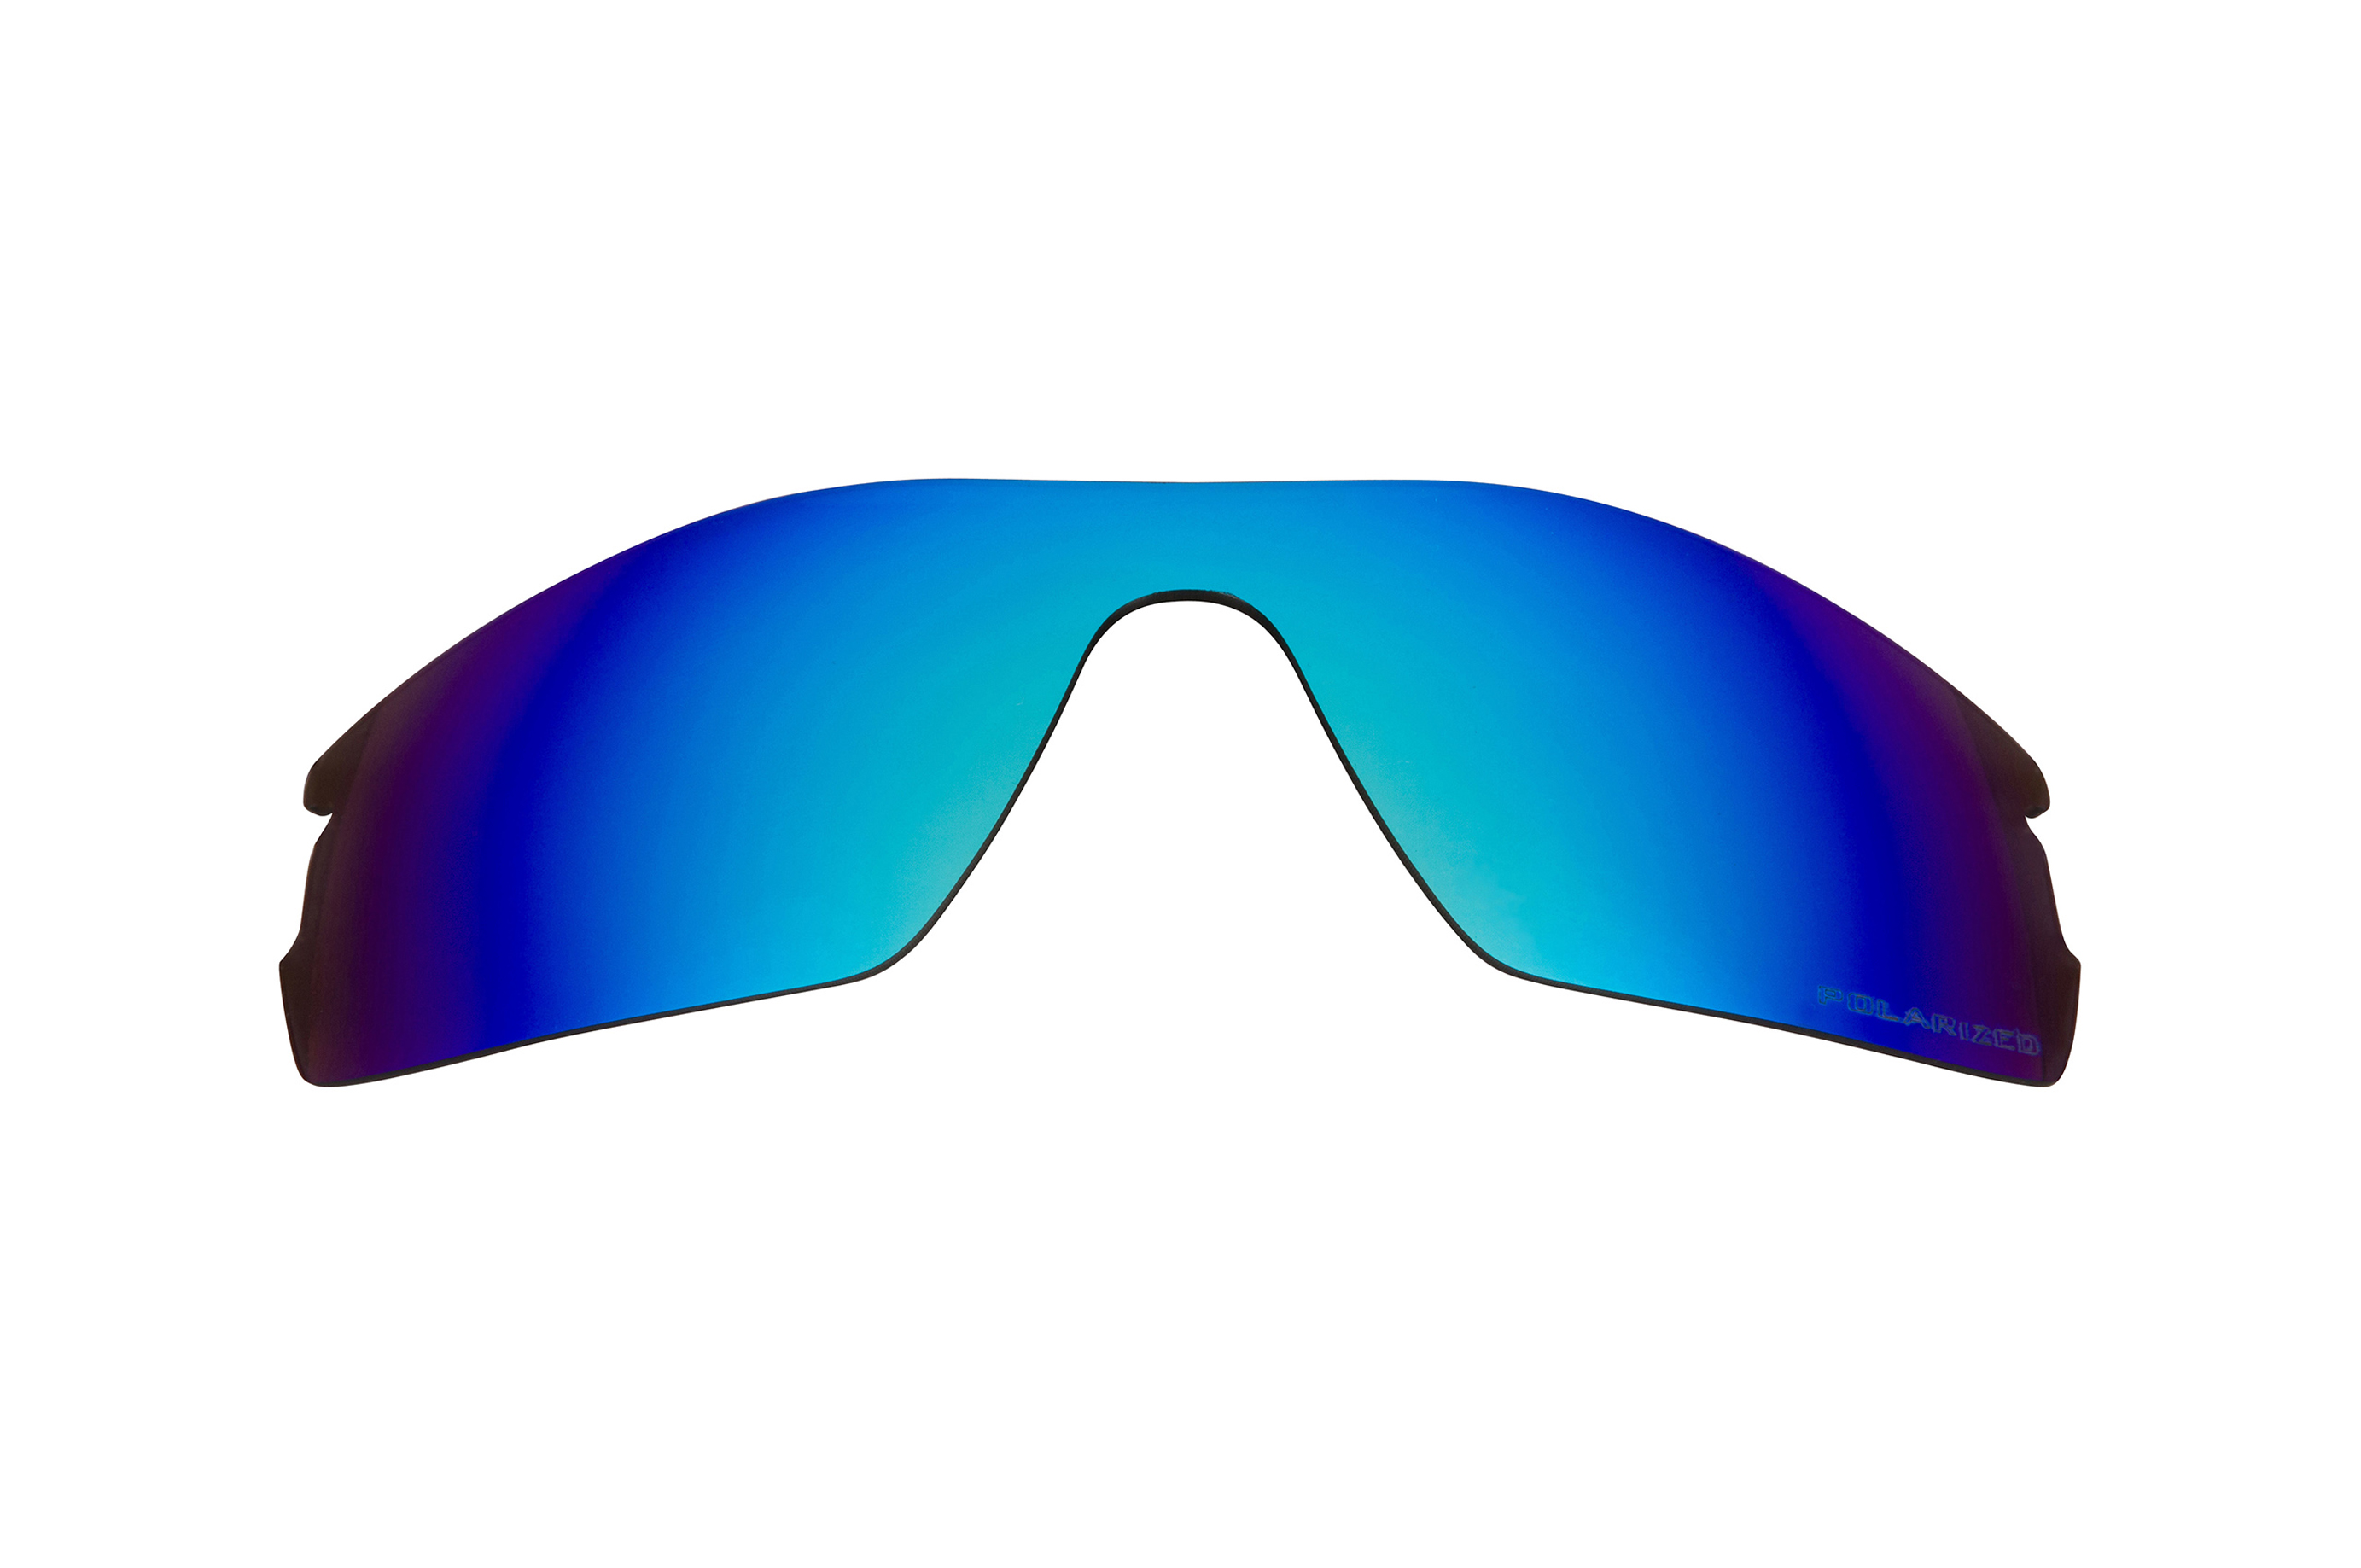 98a73faa94 Seek Polarized Replacement Lenses for Oakley Radar Pitch Blue Mirror ...